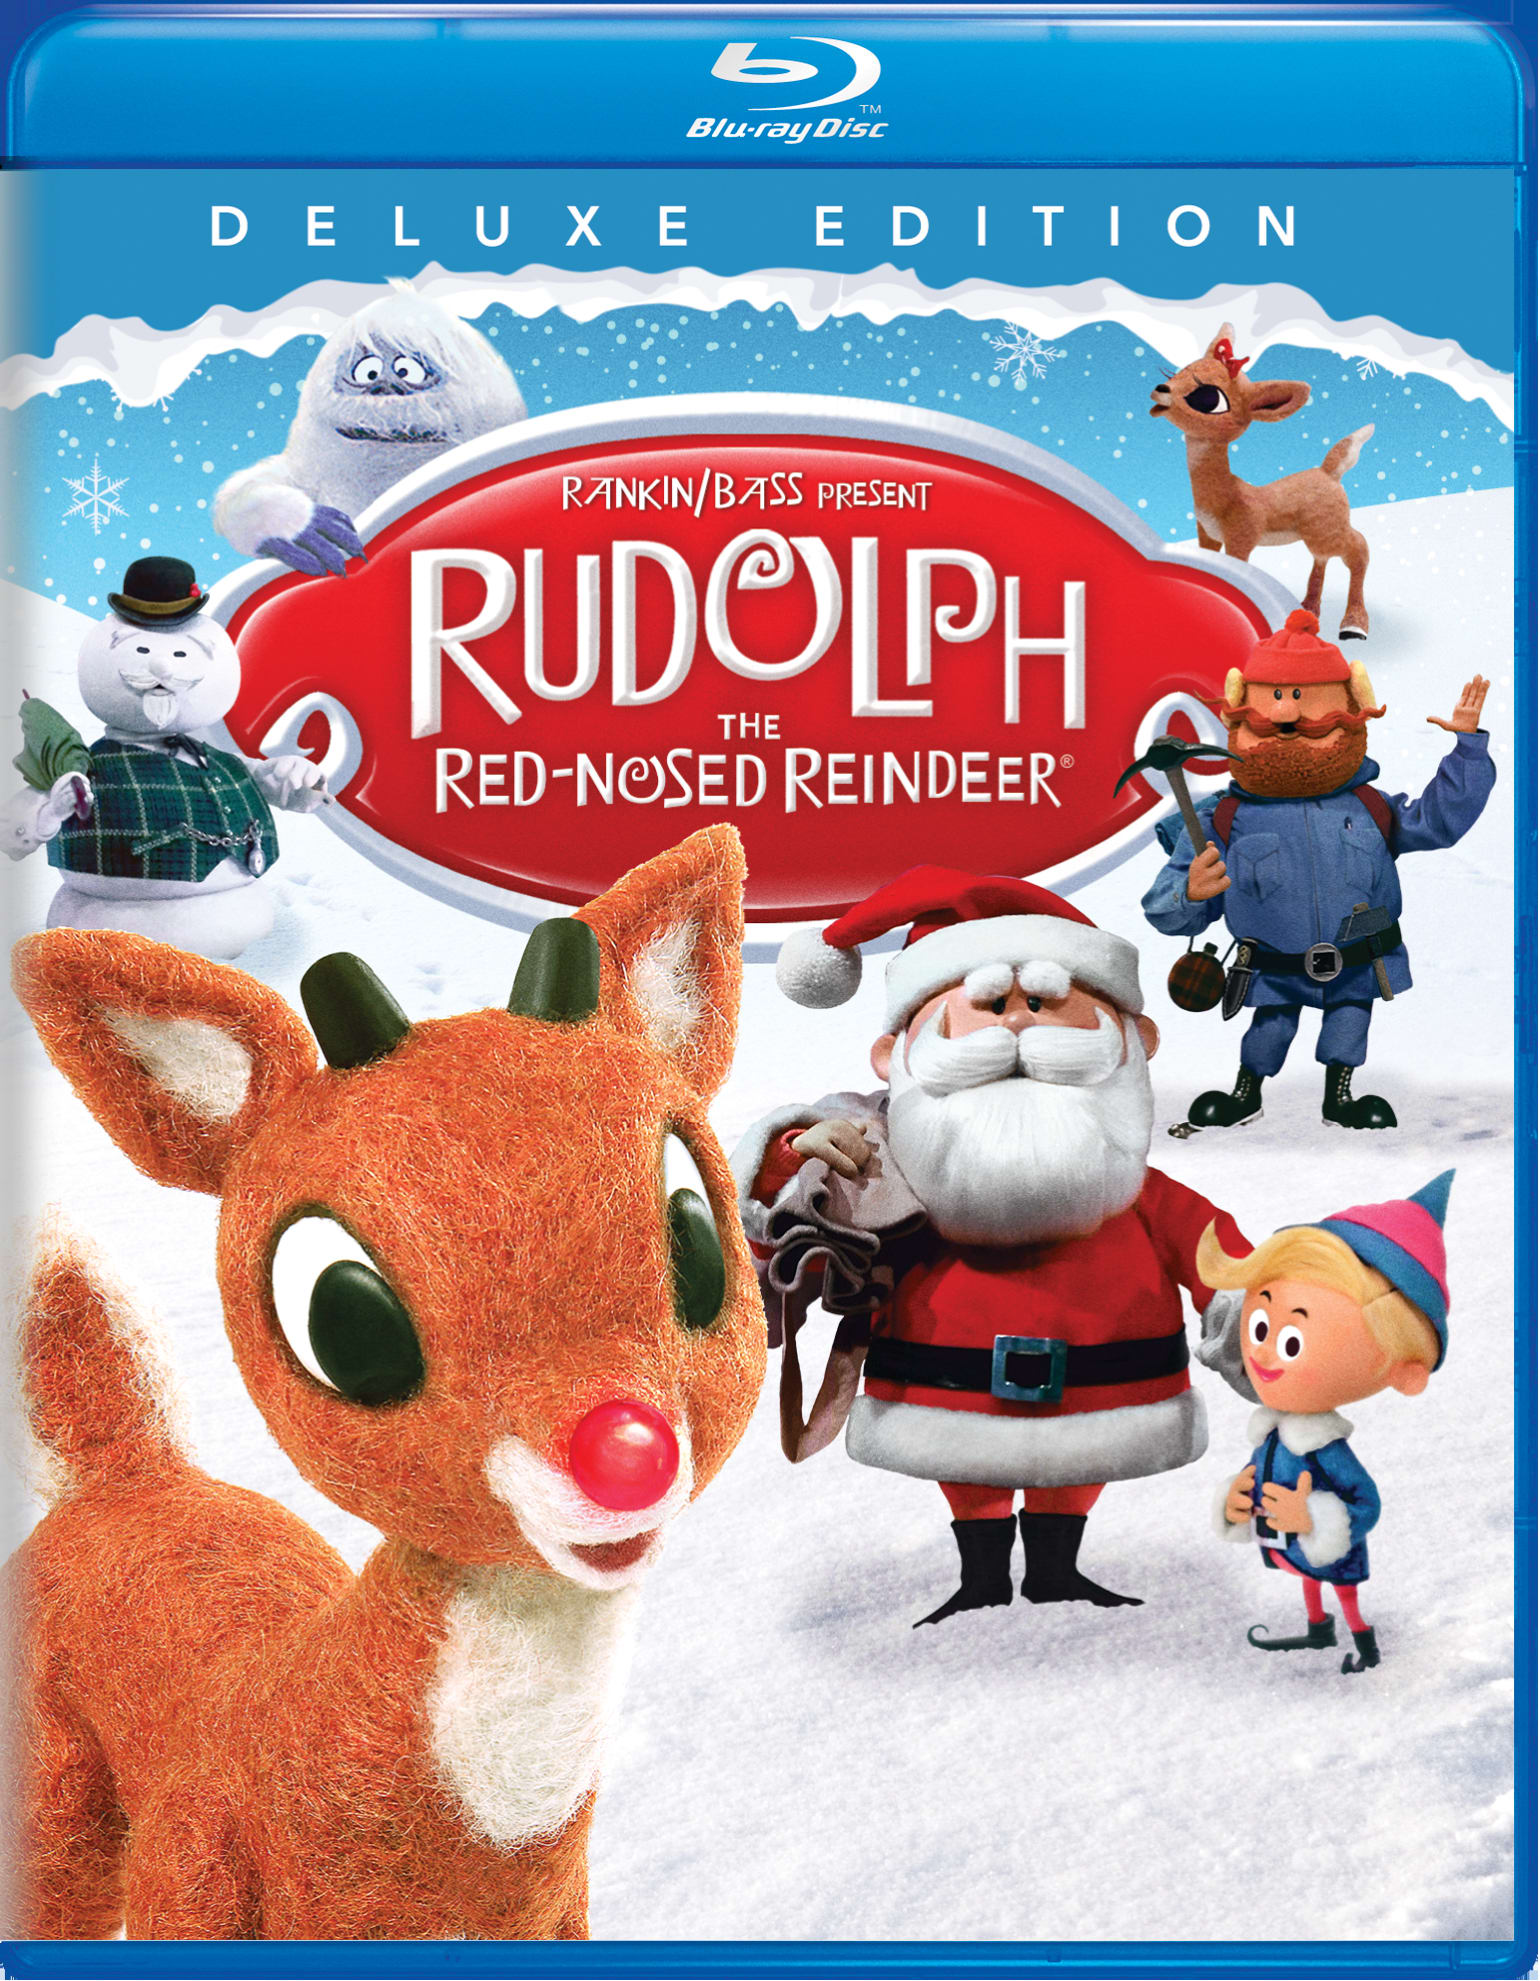 Rudolph the Red-nosed Reindeer (Deluxe Edition) [Blu-ray]